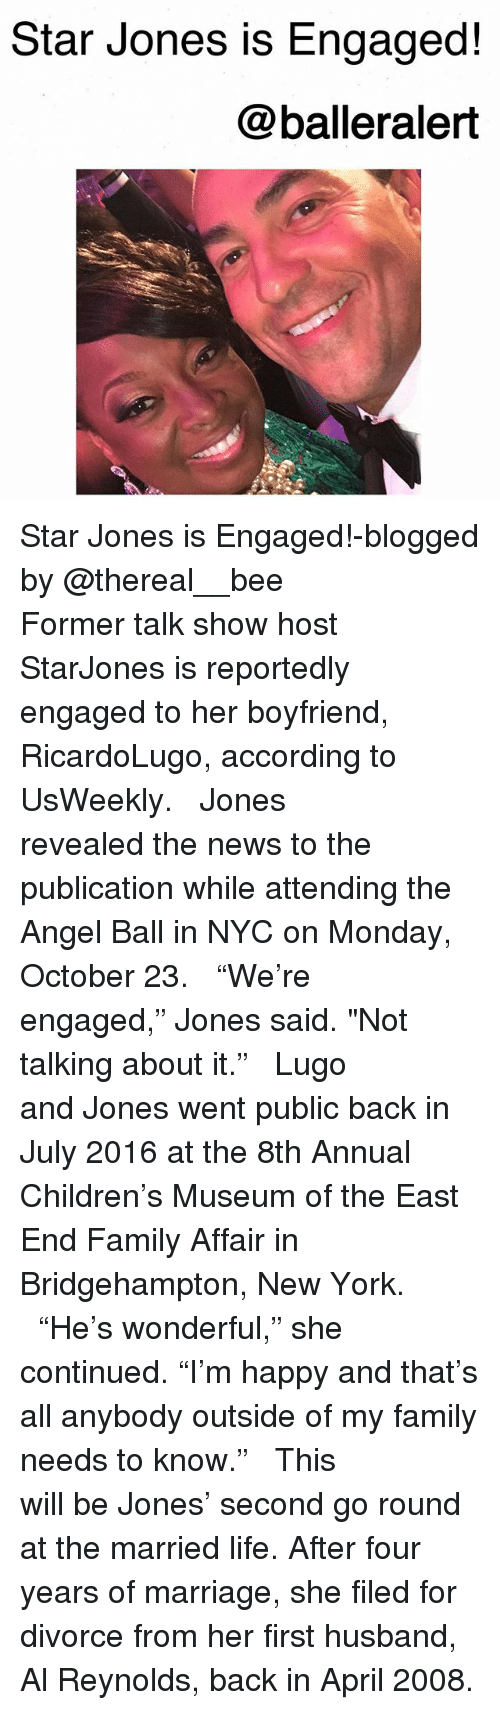 """Married Life: Star Jones is Engaged!  @balleralert Star Jones is Engaged!-blogged by @thereal__bee ⠀⠀⠀⠀⠀⠀⠀⠀⠀ ⠀⠀ Former talk show host StarJones is reportedly engaged to her boyfriend, RicardoLugo, according to UsWeekly. ⠀⠀⠀⠀⠀⠀⠀⠀⠀ ⠀⠀ Jones revealed the news to the publication while attending the Angel Ball in NYC on Monday, October 23. ⠀⠀⠀⠀⠀⠀⠀⠀⠀ ⠀⠀ """"We're engaged,"""" Jones said. """"Not talking about it."""" ⠀⠀⠀⠀⠀⠀⠀⠀⠀ ⠀⠀ Lugo and Jones went public back in July 2016 at the 8th Annual Children's Museum of the East End Family Affair in Bridgehampton, New York. ⠀⠀⠀⠀⠀⠀⠀⠀⠀ ⠀⠀ """"He's wonderful,"""" she continued. """"I'm happy and that's all anybody outside of my family needs to know."""" ⠀⠀⠀⠀⠀⠀⠀⠀⠀ ⠀⠀ This will be Jones' second go round at the married life. After four years of marriage, she filed for divorce from her first husband, Al Reynolds, back in April 2008."""